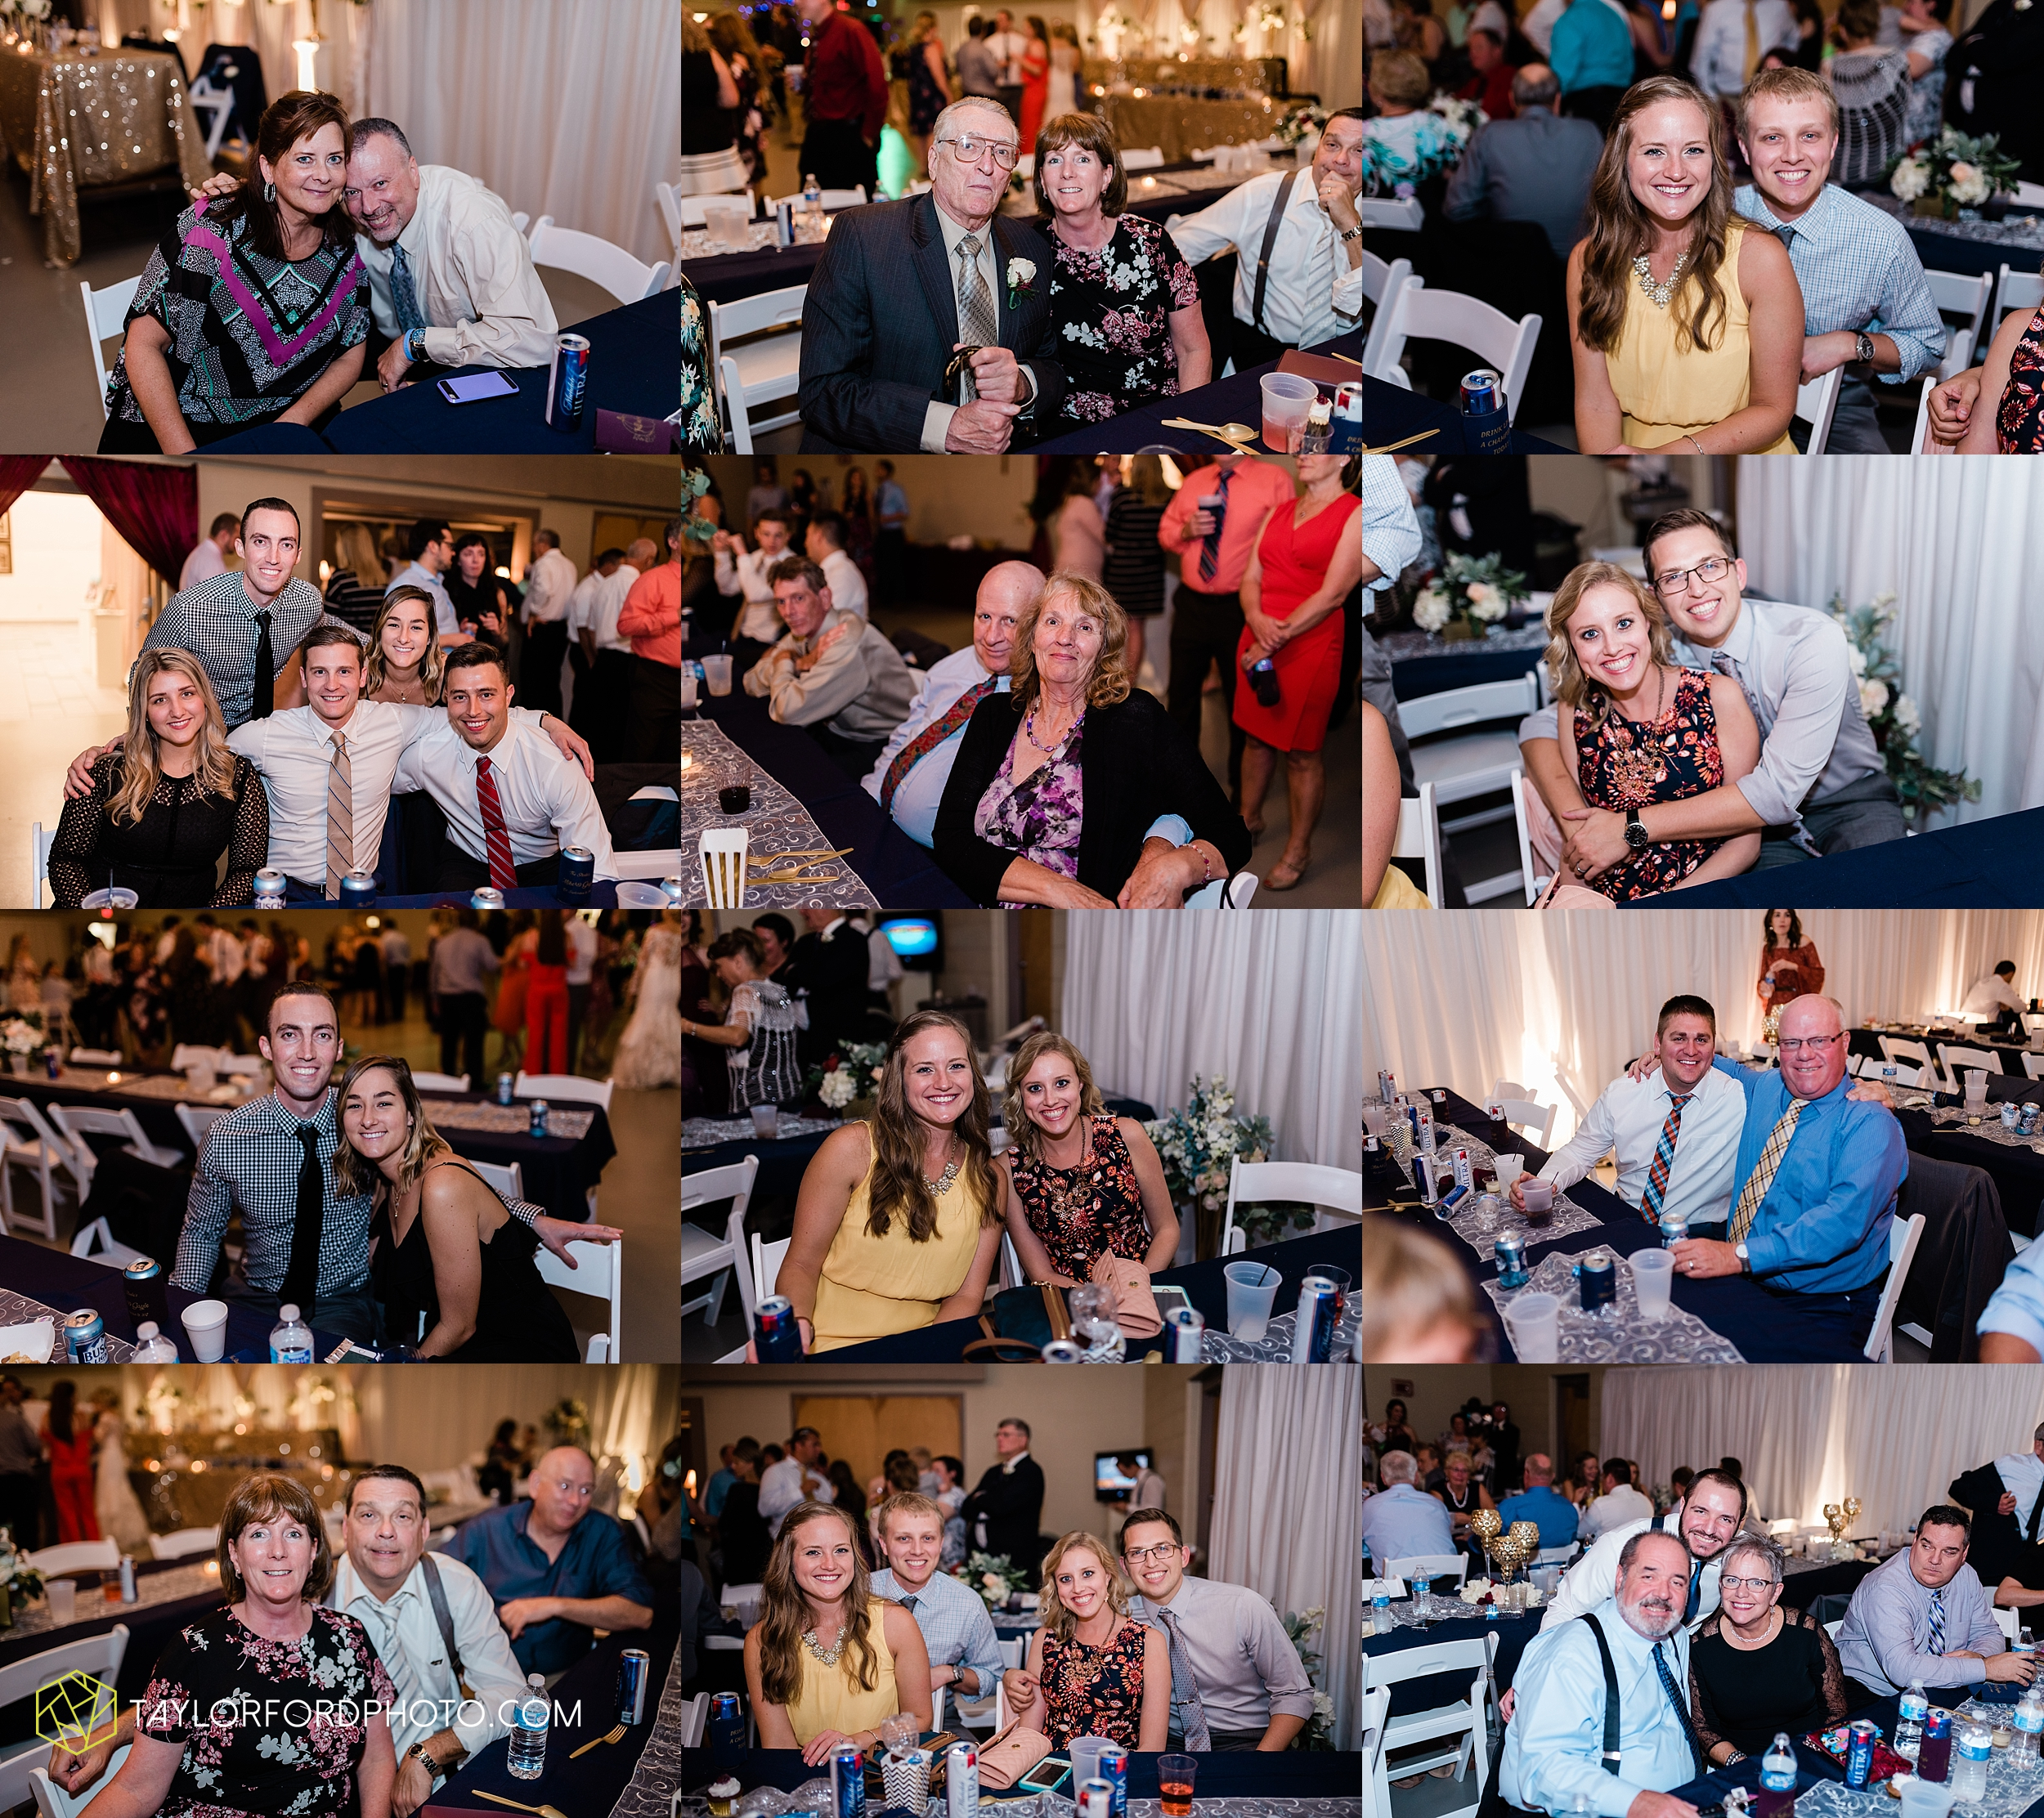 gayle-rayman-mike-steele-ottoville-ohio-wedding-immaculate-conception-parish-center-wedding-sycamore-lake-winery-wannamachers-photographer-taylor-ford-photography_0444.jpg